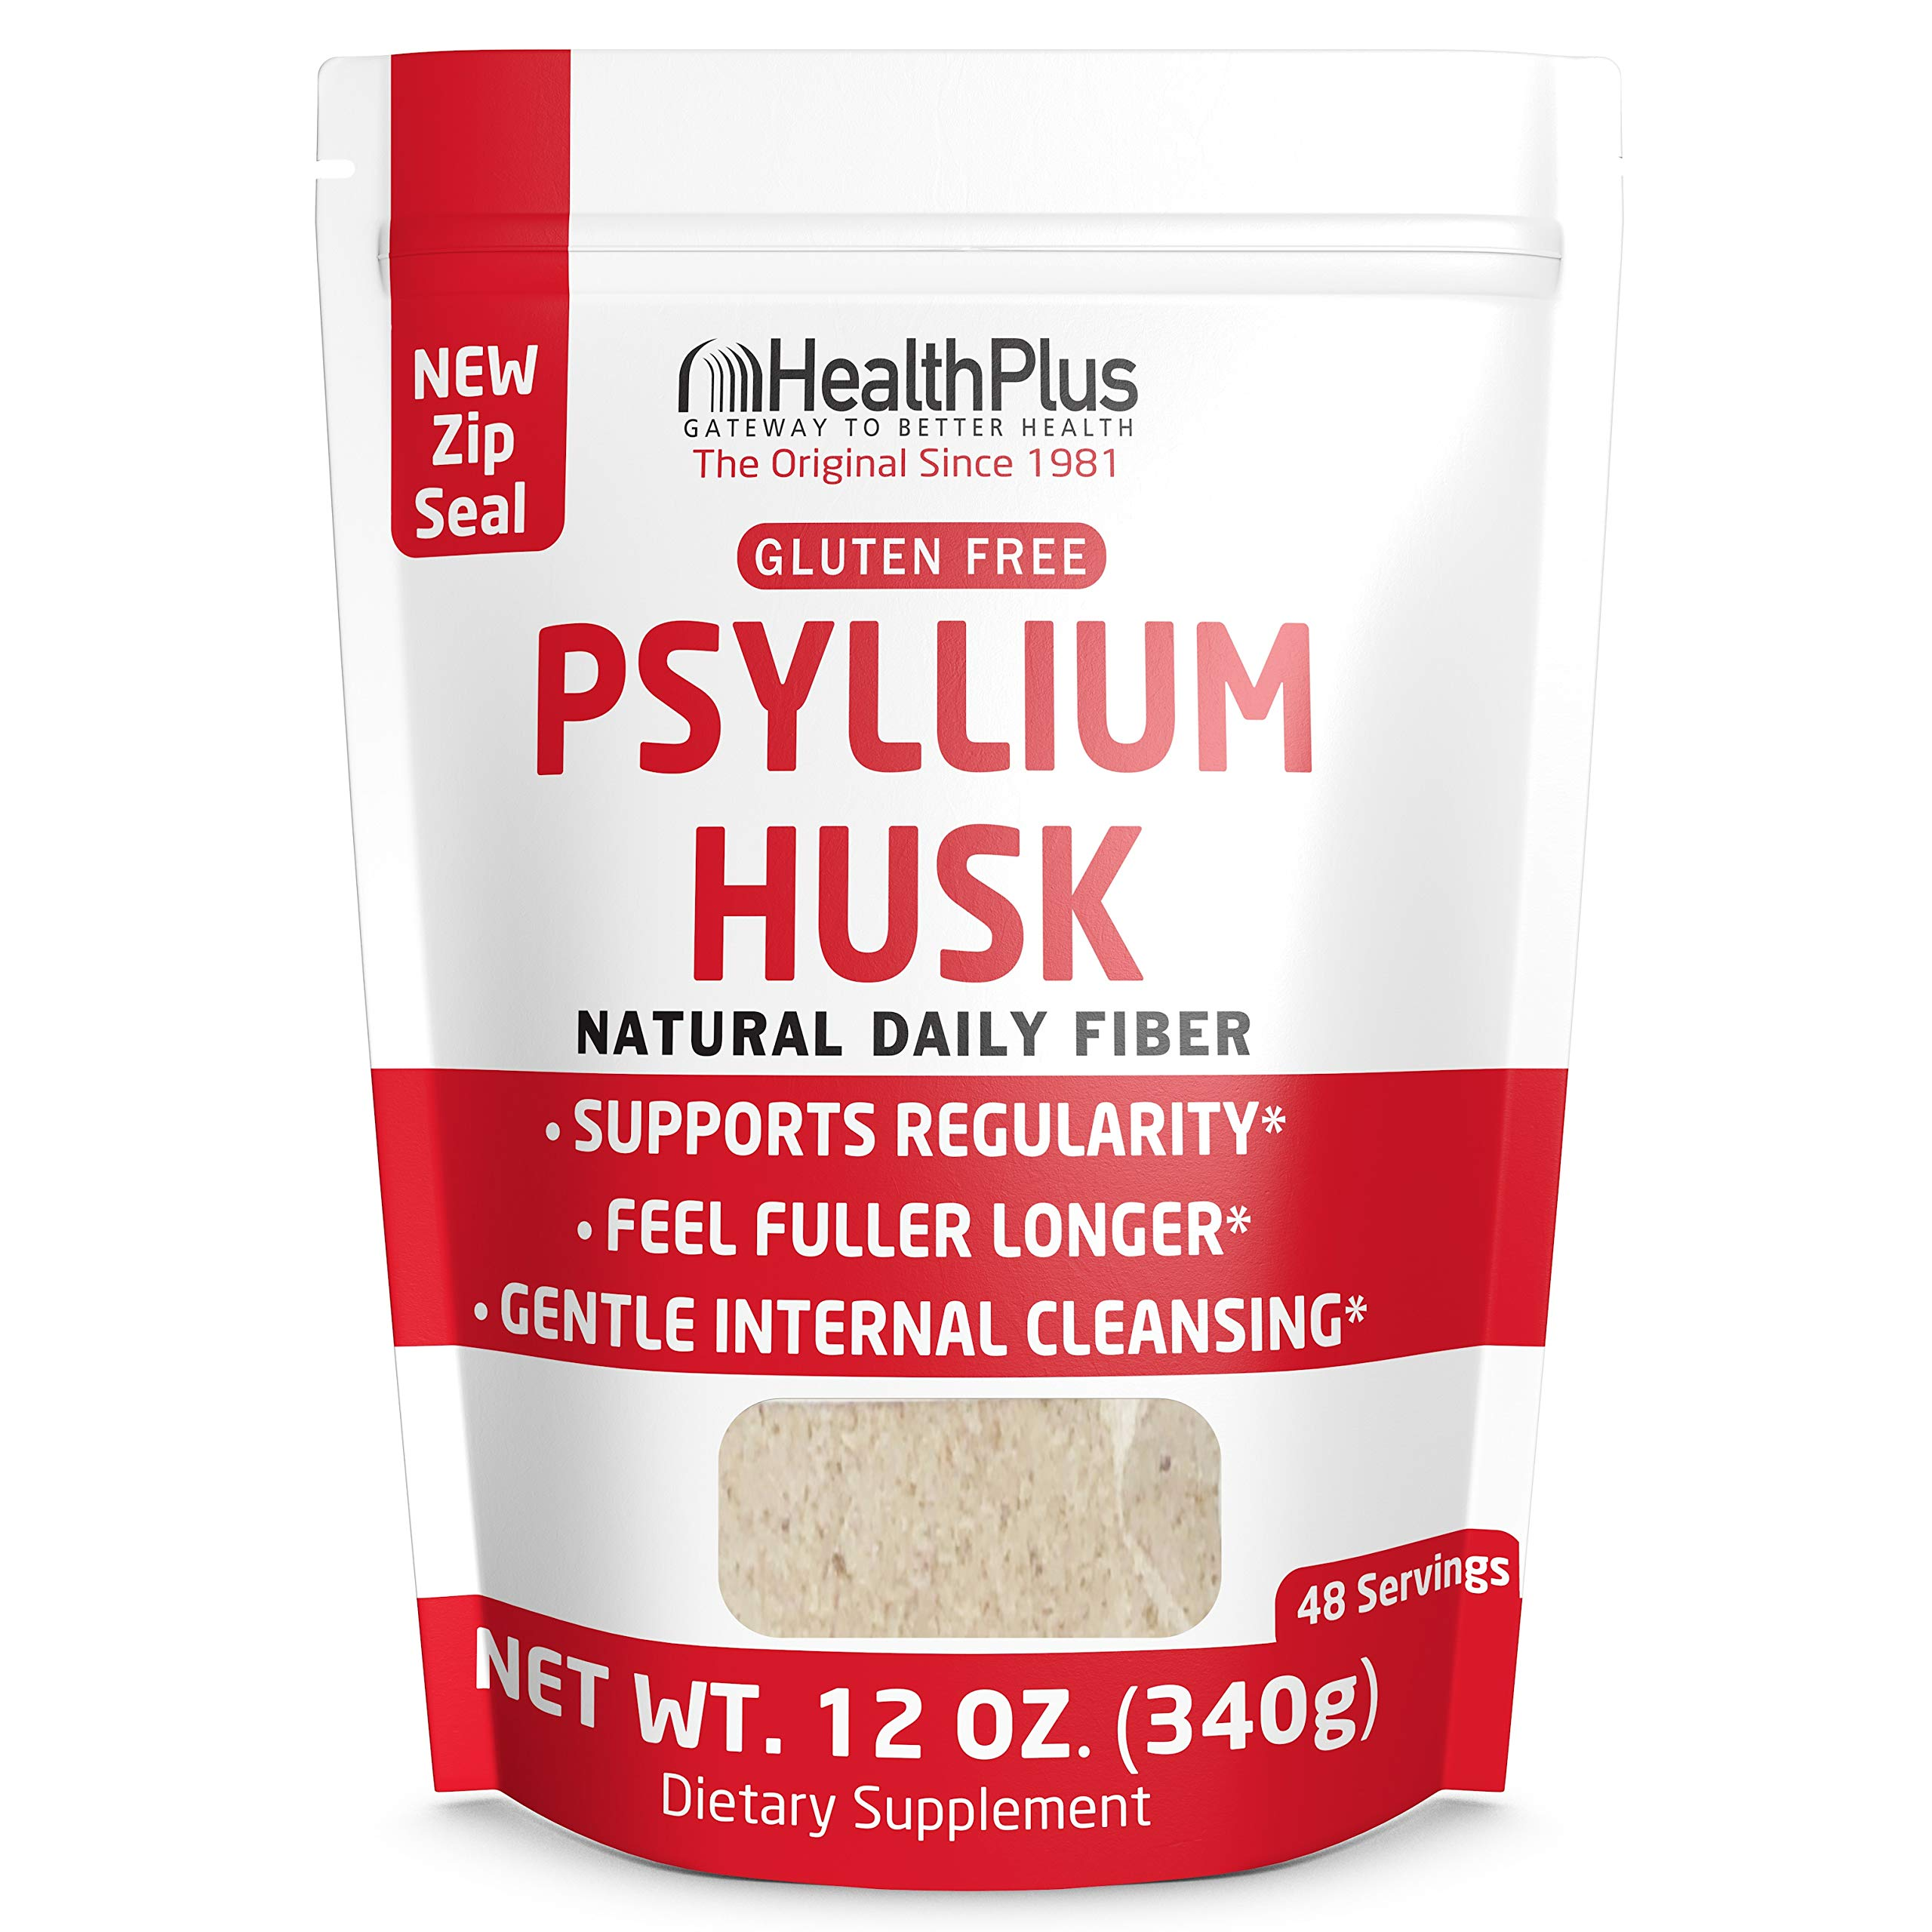 Health Plus Pure Psyllium Husk Bags, 12-Ounces, 48 Servings by Health Plus